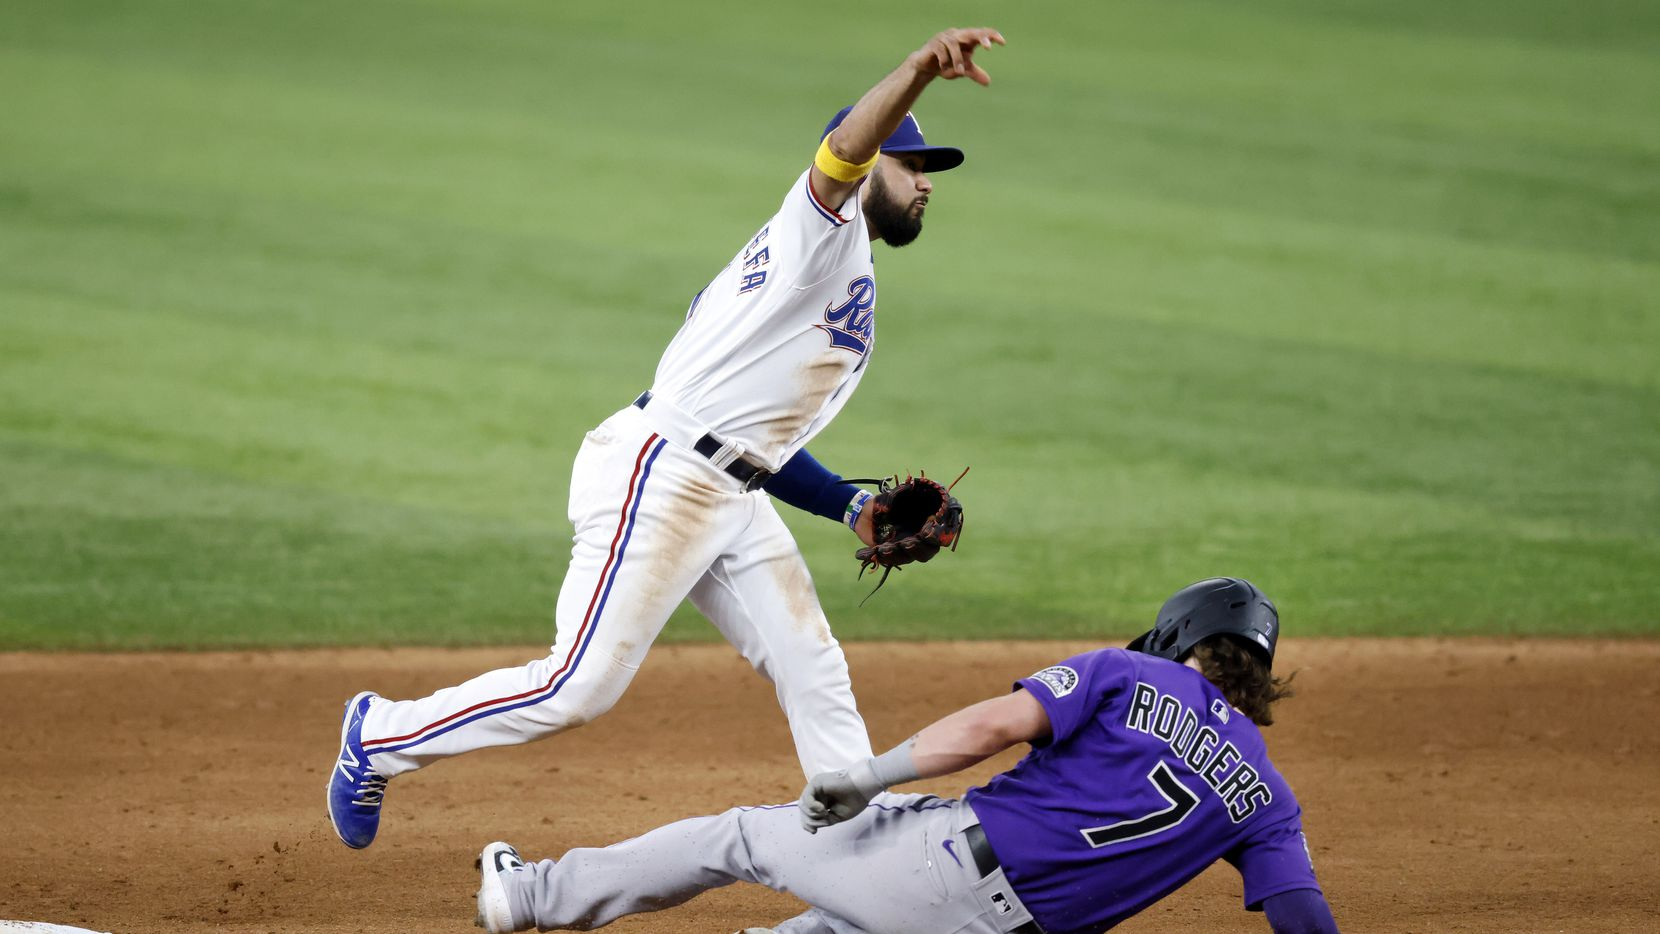 Texas Ranger shortstop Isiah Kiner-Falefa (9) turns the front end of an attempted double play getting Colorado Rockies Brendan Rodgers (7) during the fifth inning at Globe Life Park in Arlington, Texas Wednesday, September 1, 2021. The throw to first was late.